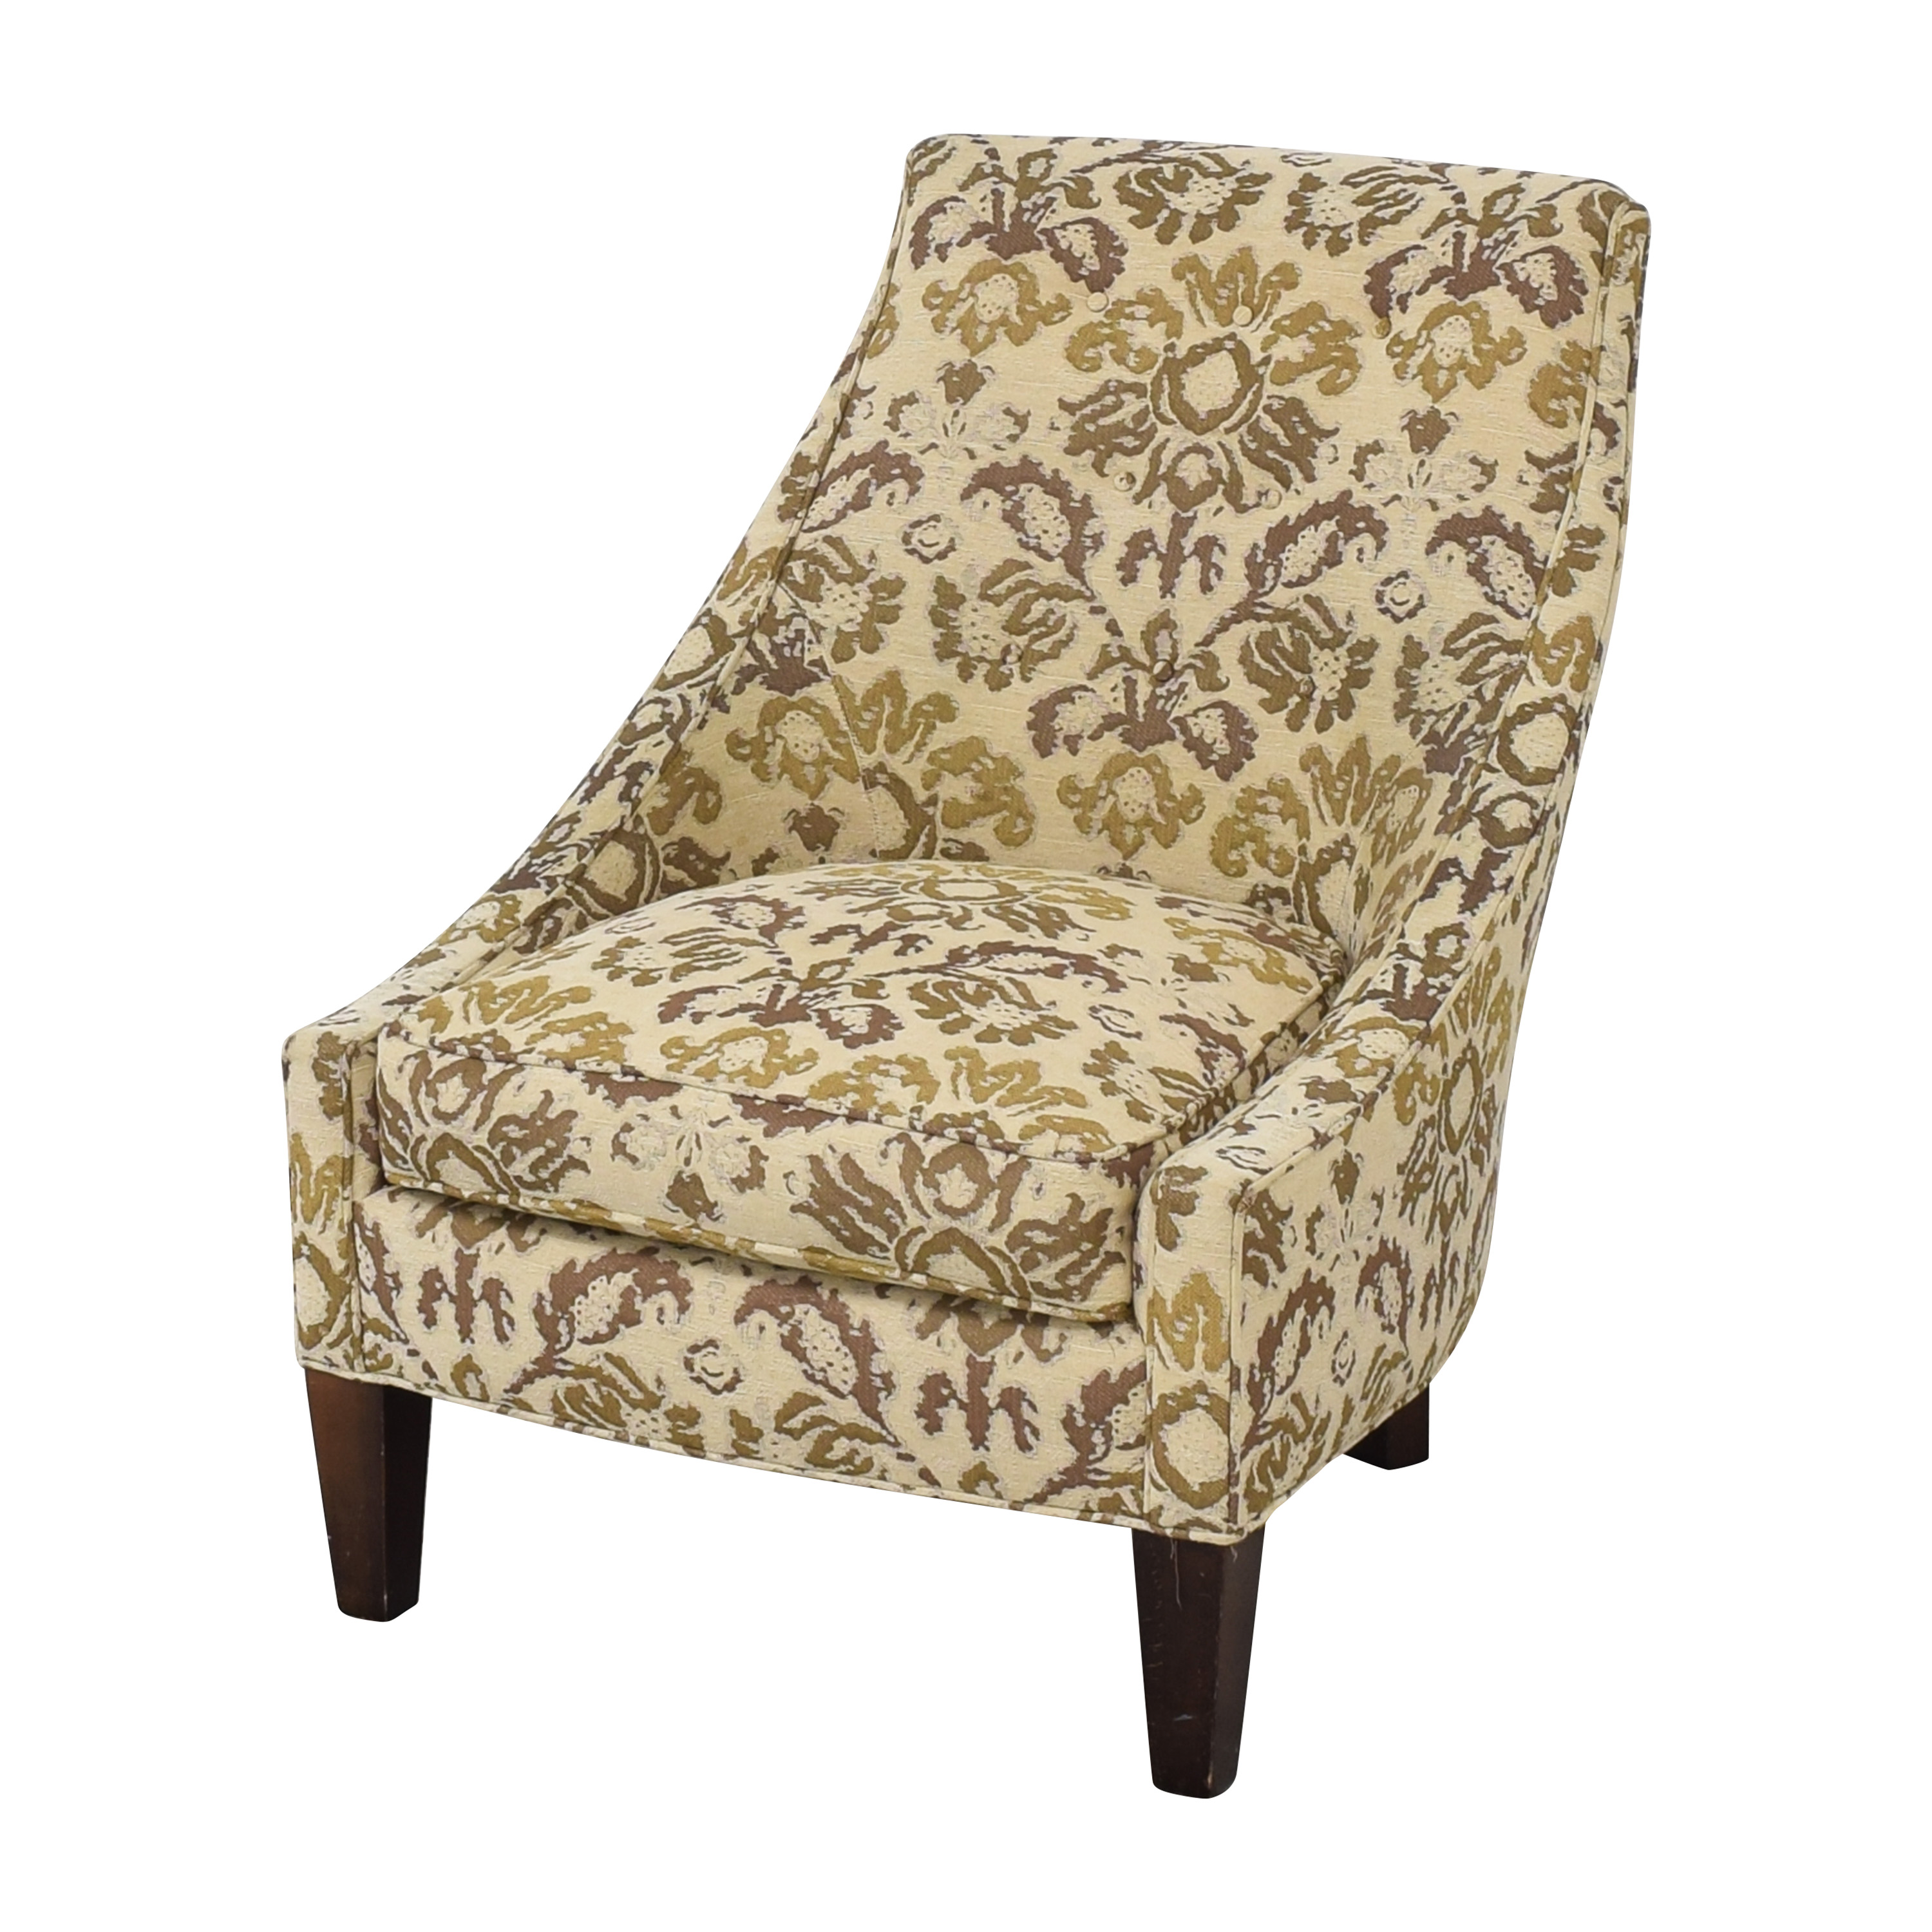 Williams Sonoma Williams Sonoma Upholstered Accent Chair price